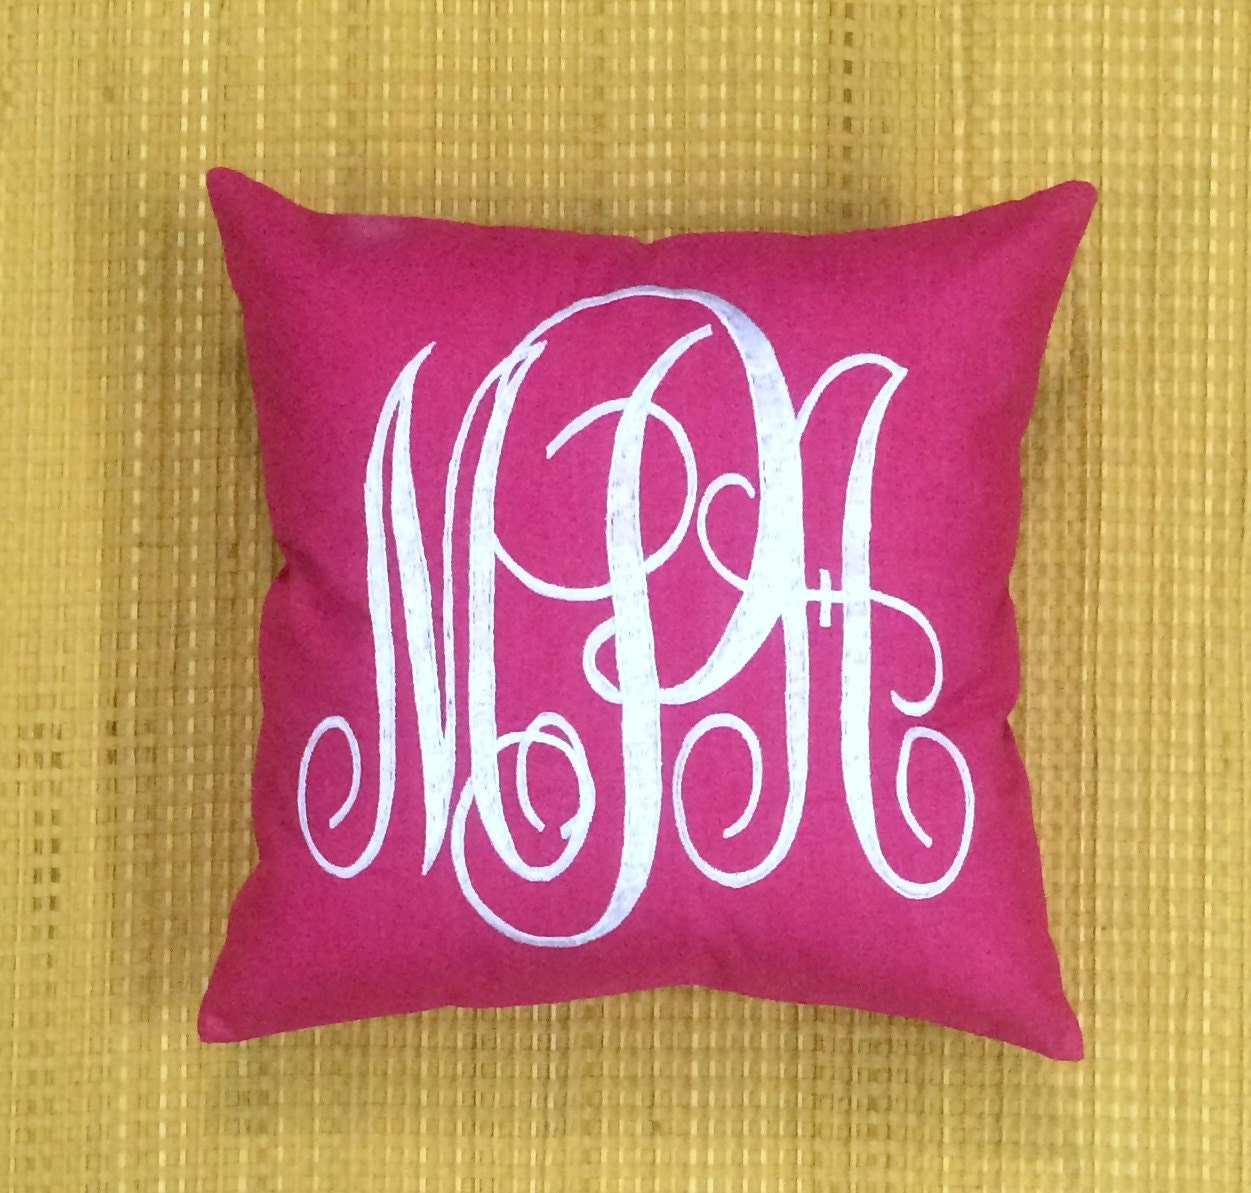 Decorative Monogram Pillow : 30%OFF Monogram Pillow Decorative Pillow Personalized Gift